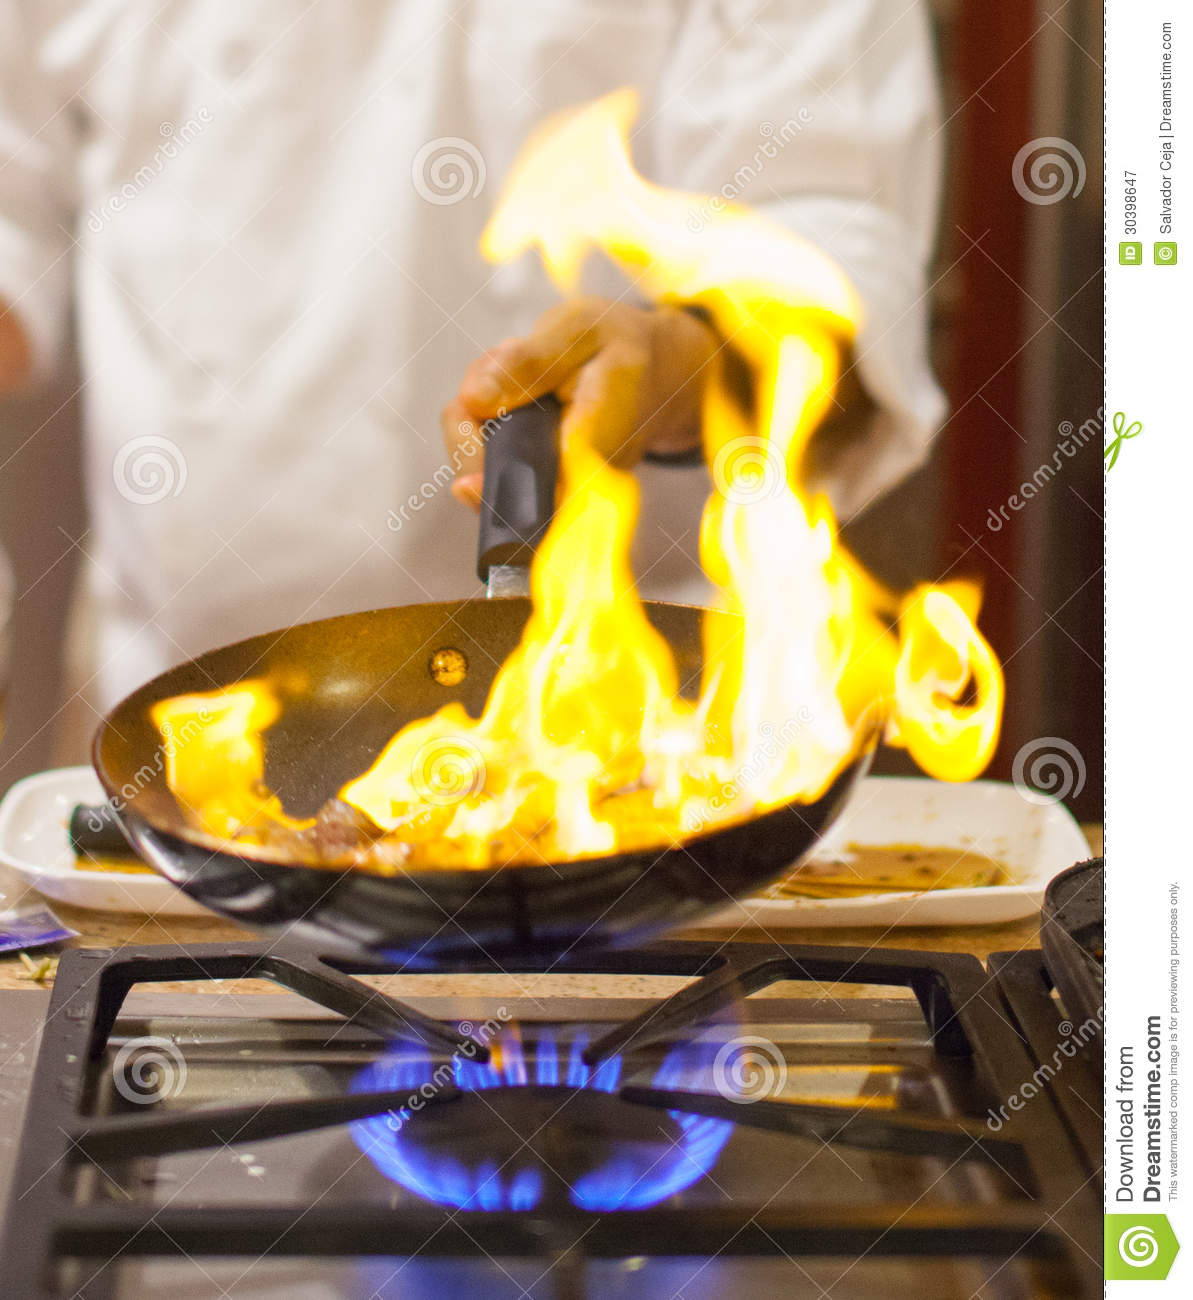 A chef cooking in the kitchen with flaming gas fire